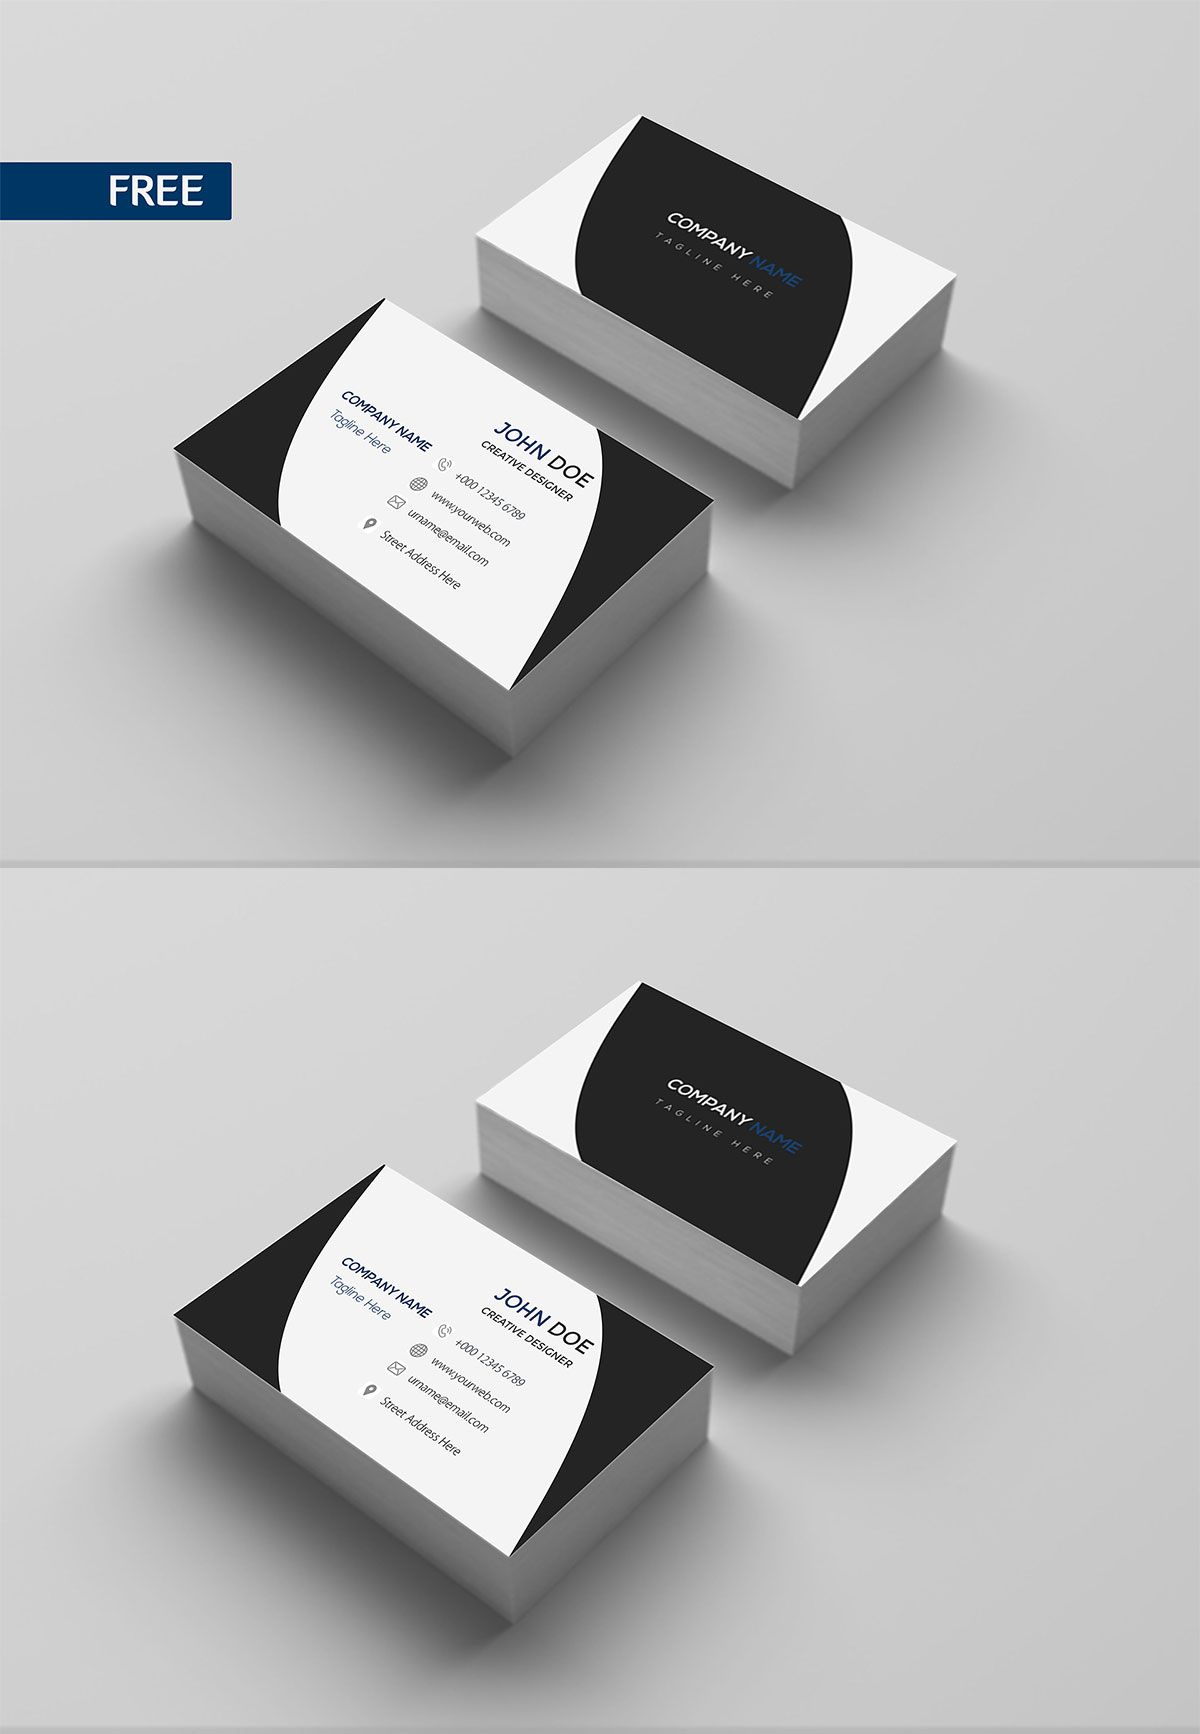 Free Print Design Business Card Template Creativetacos For Buisness Ca Free Business Card Templates Business Card Template Photoshop Printable Business Cards